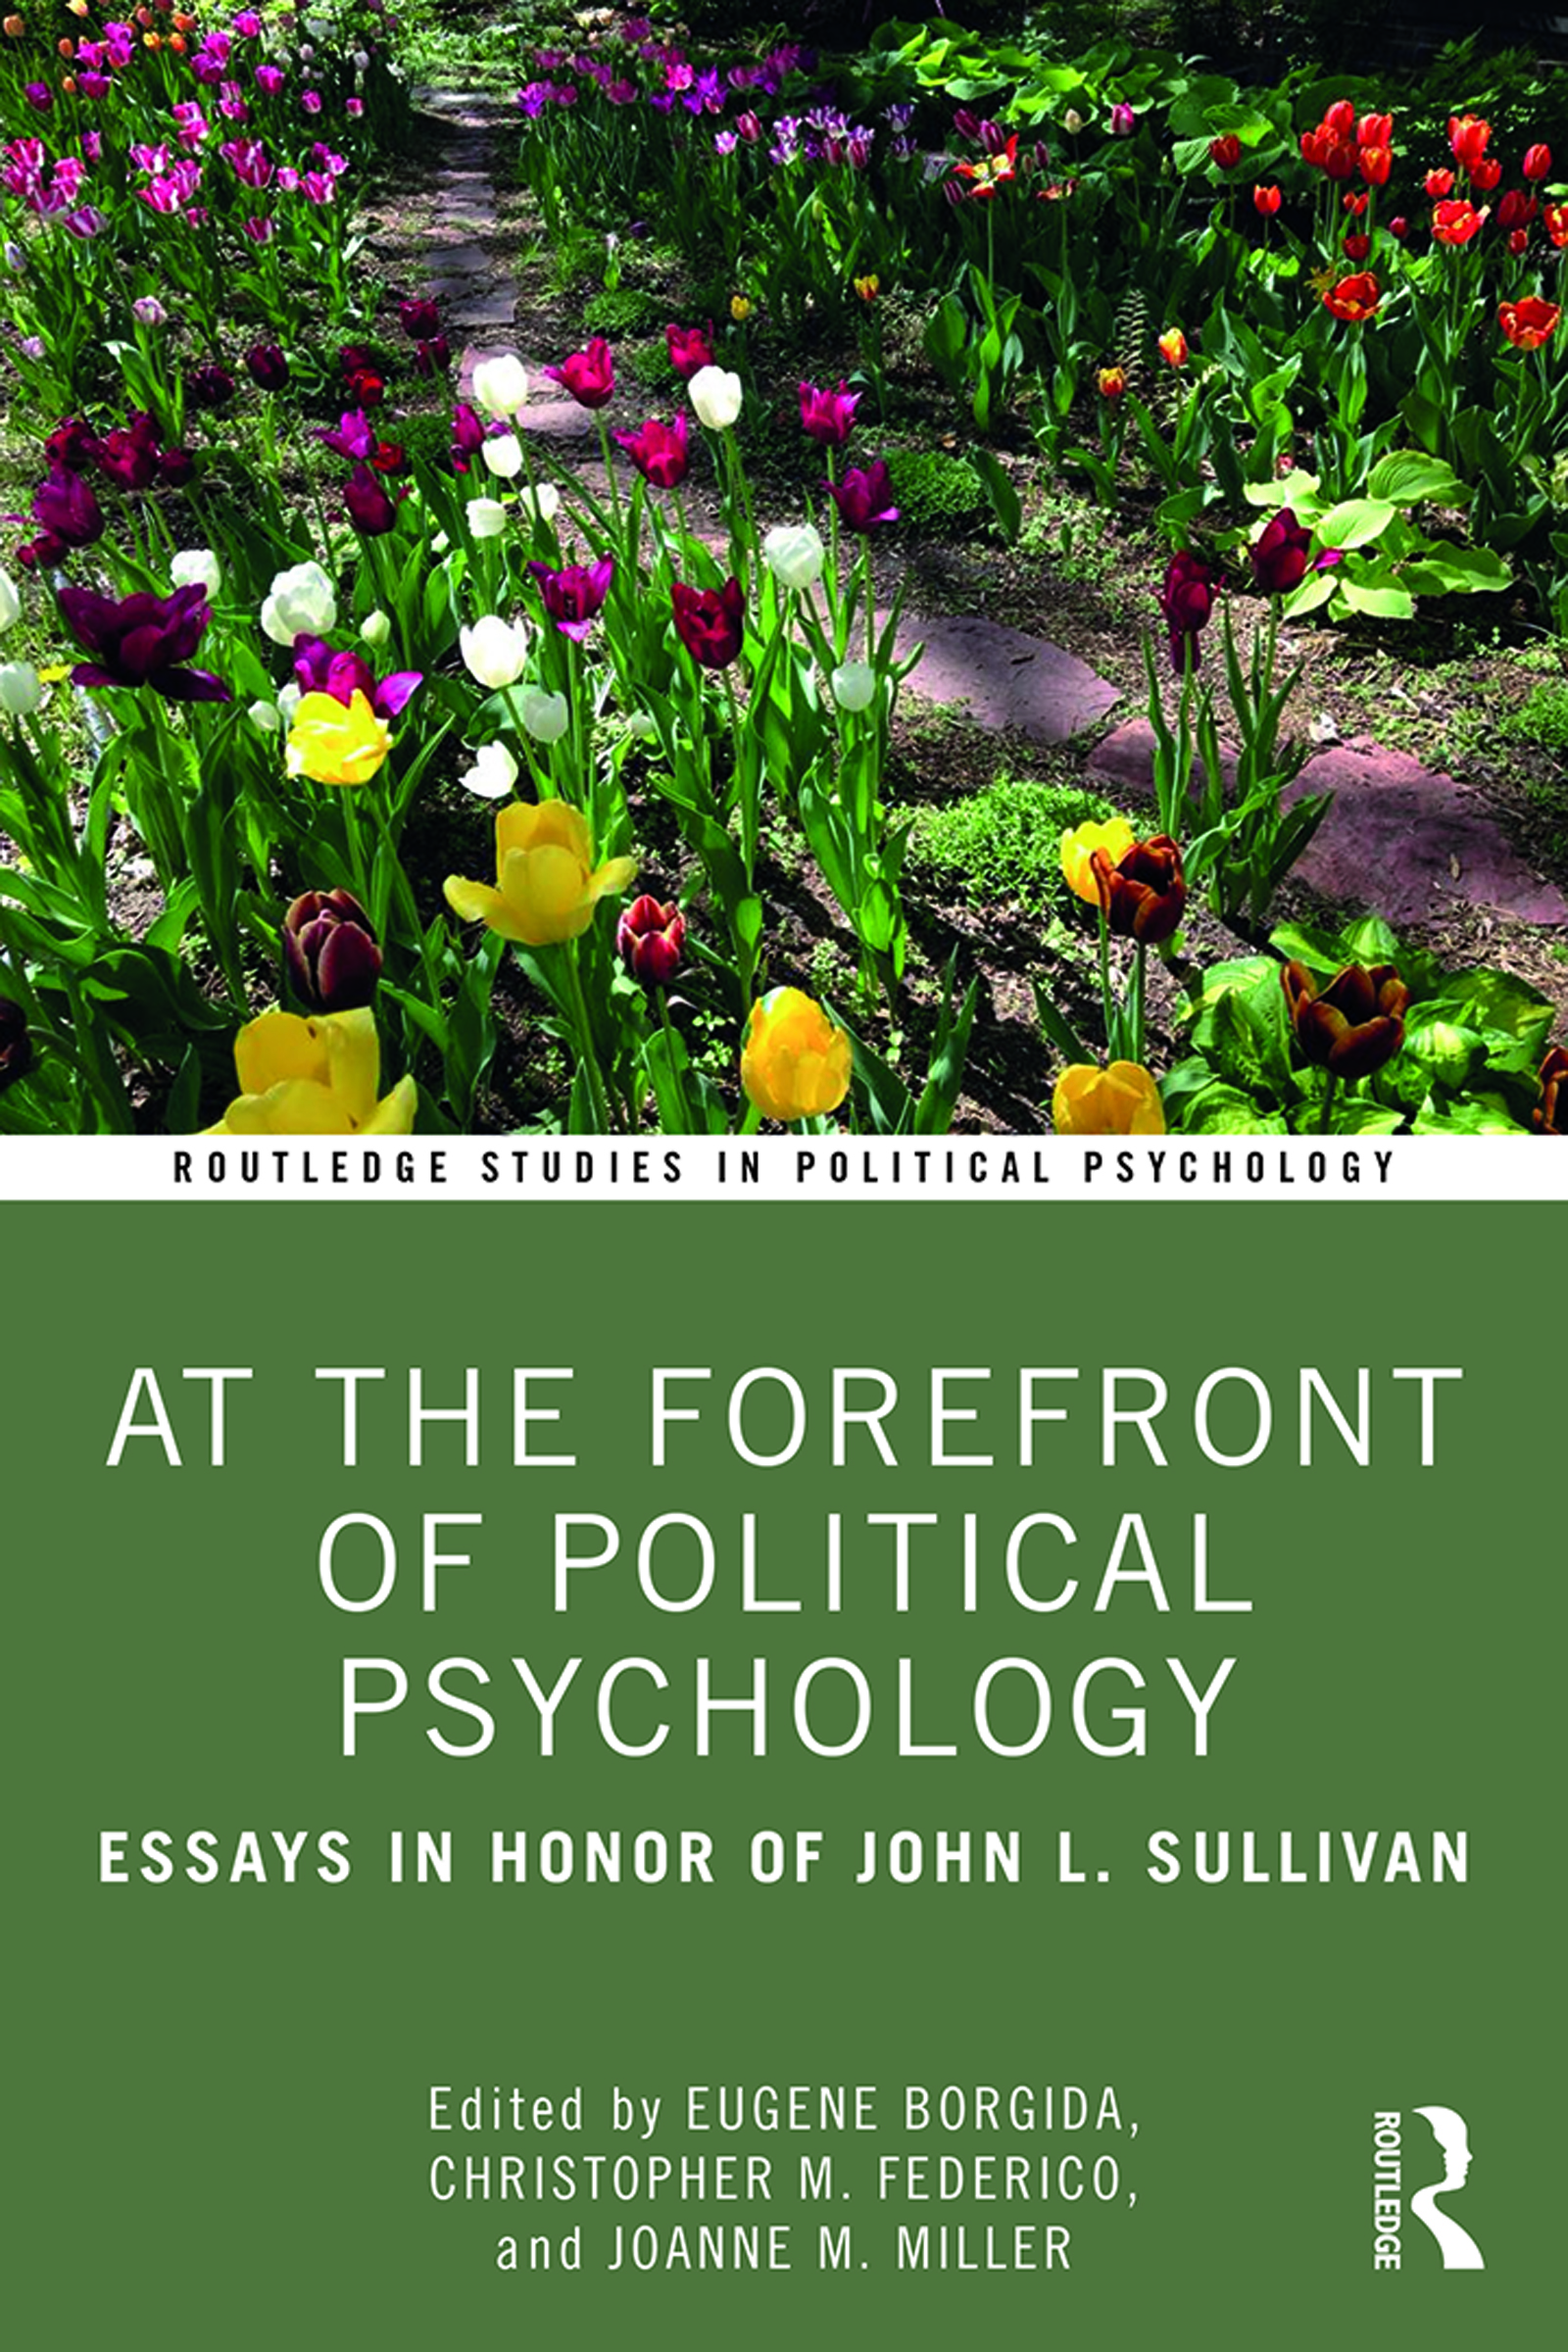 At the Forefront of Political Psychology: Essays in Honor of John L. Sullivan book cover